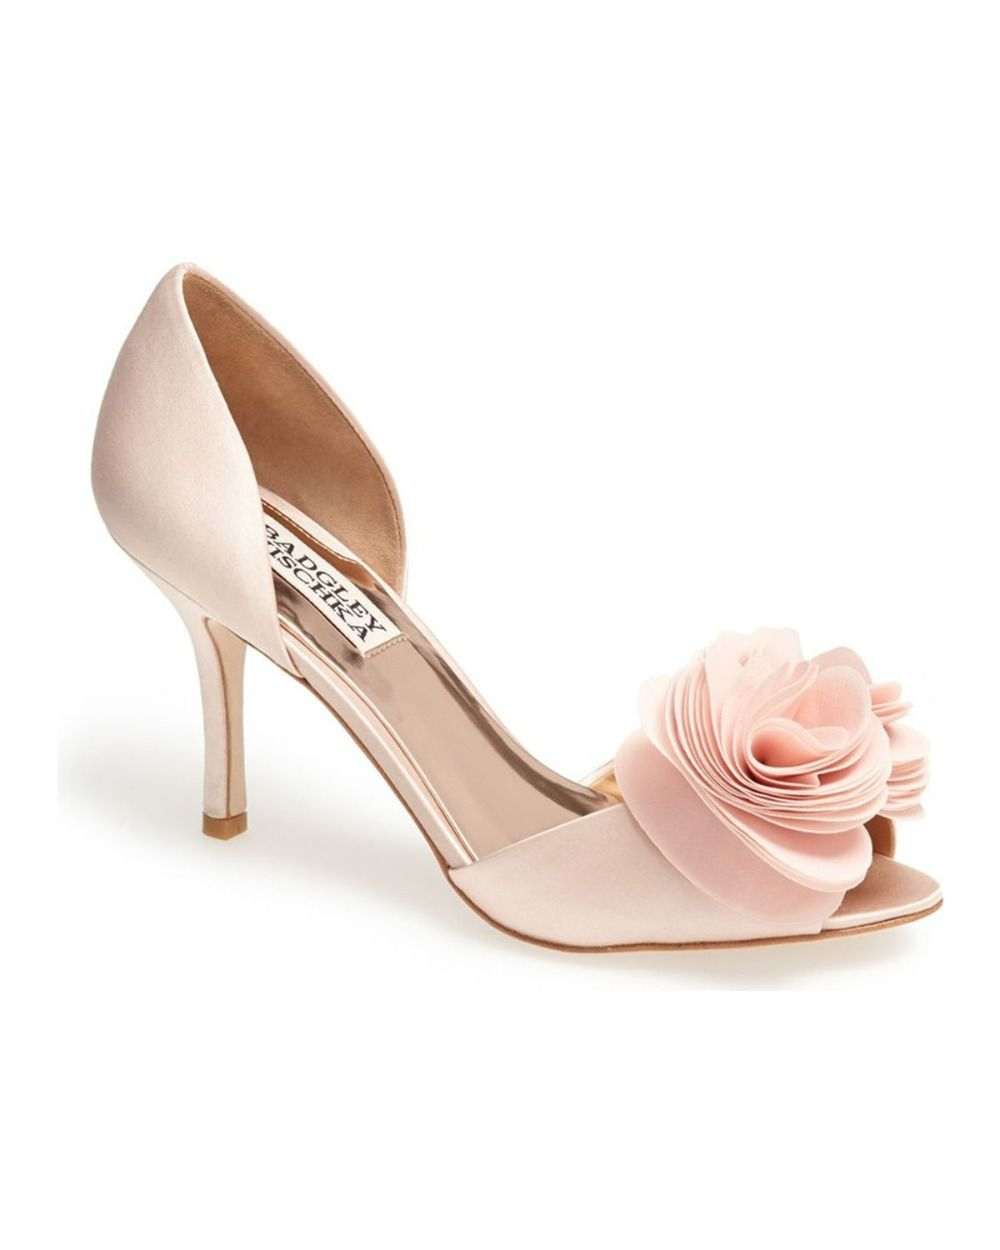 abbd4d22a3a6 Badgley Mischka  Thora Badgley Mischka Shoes